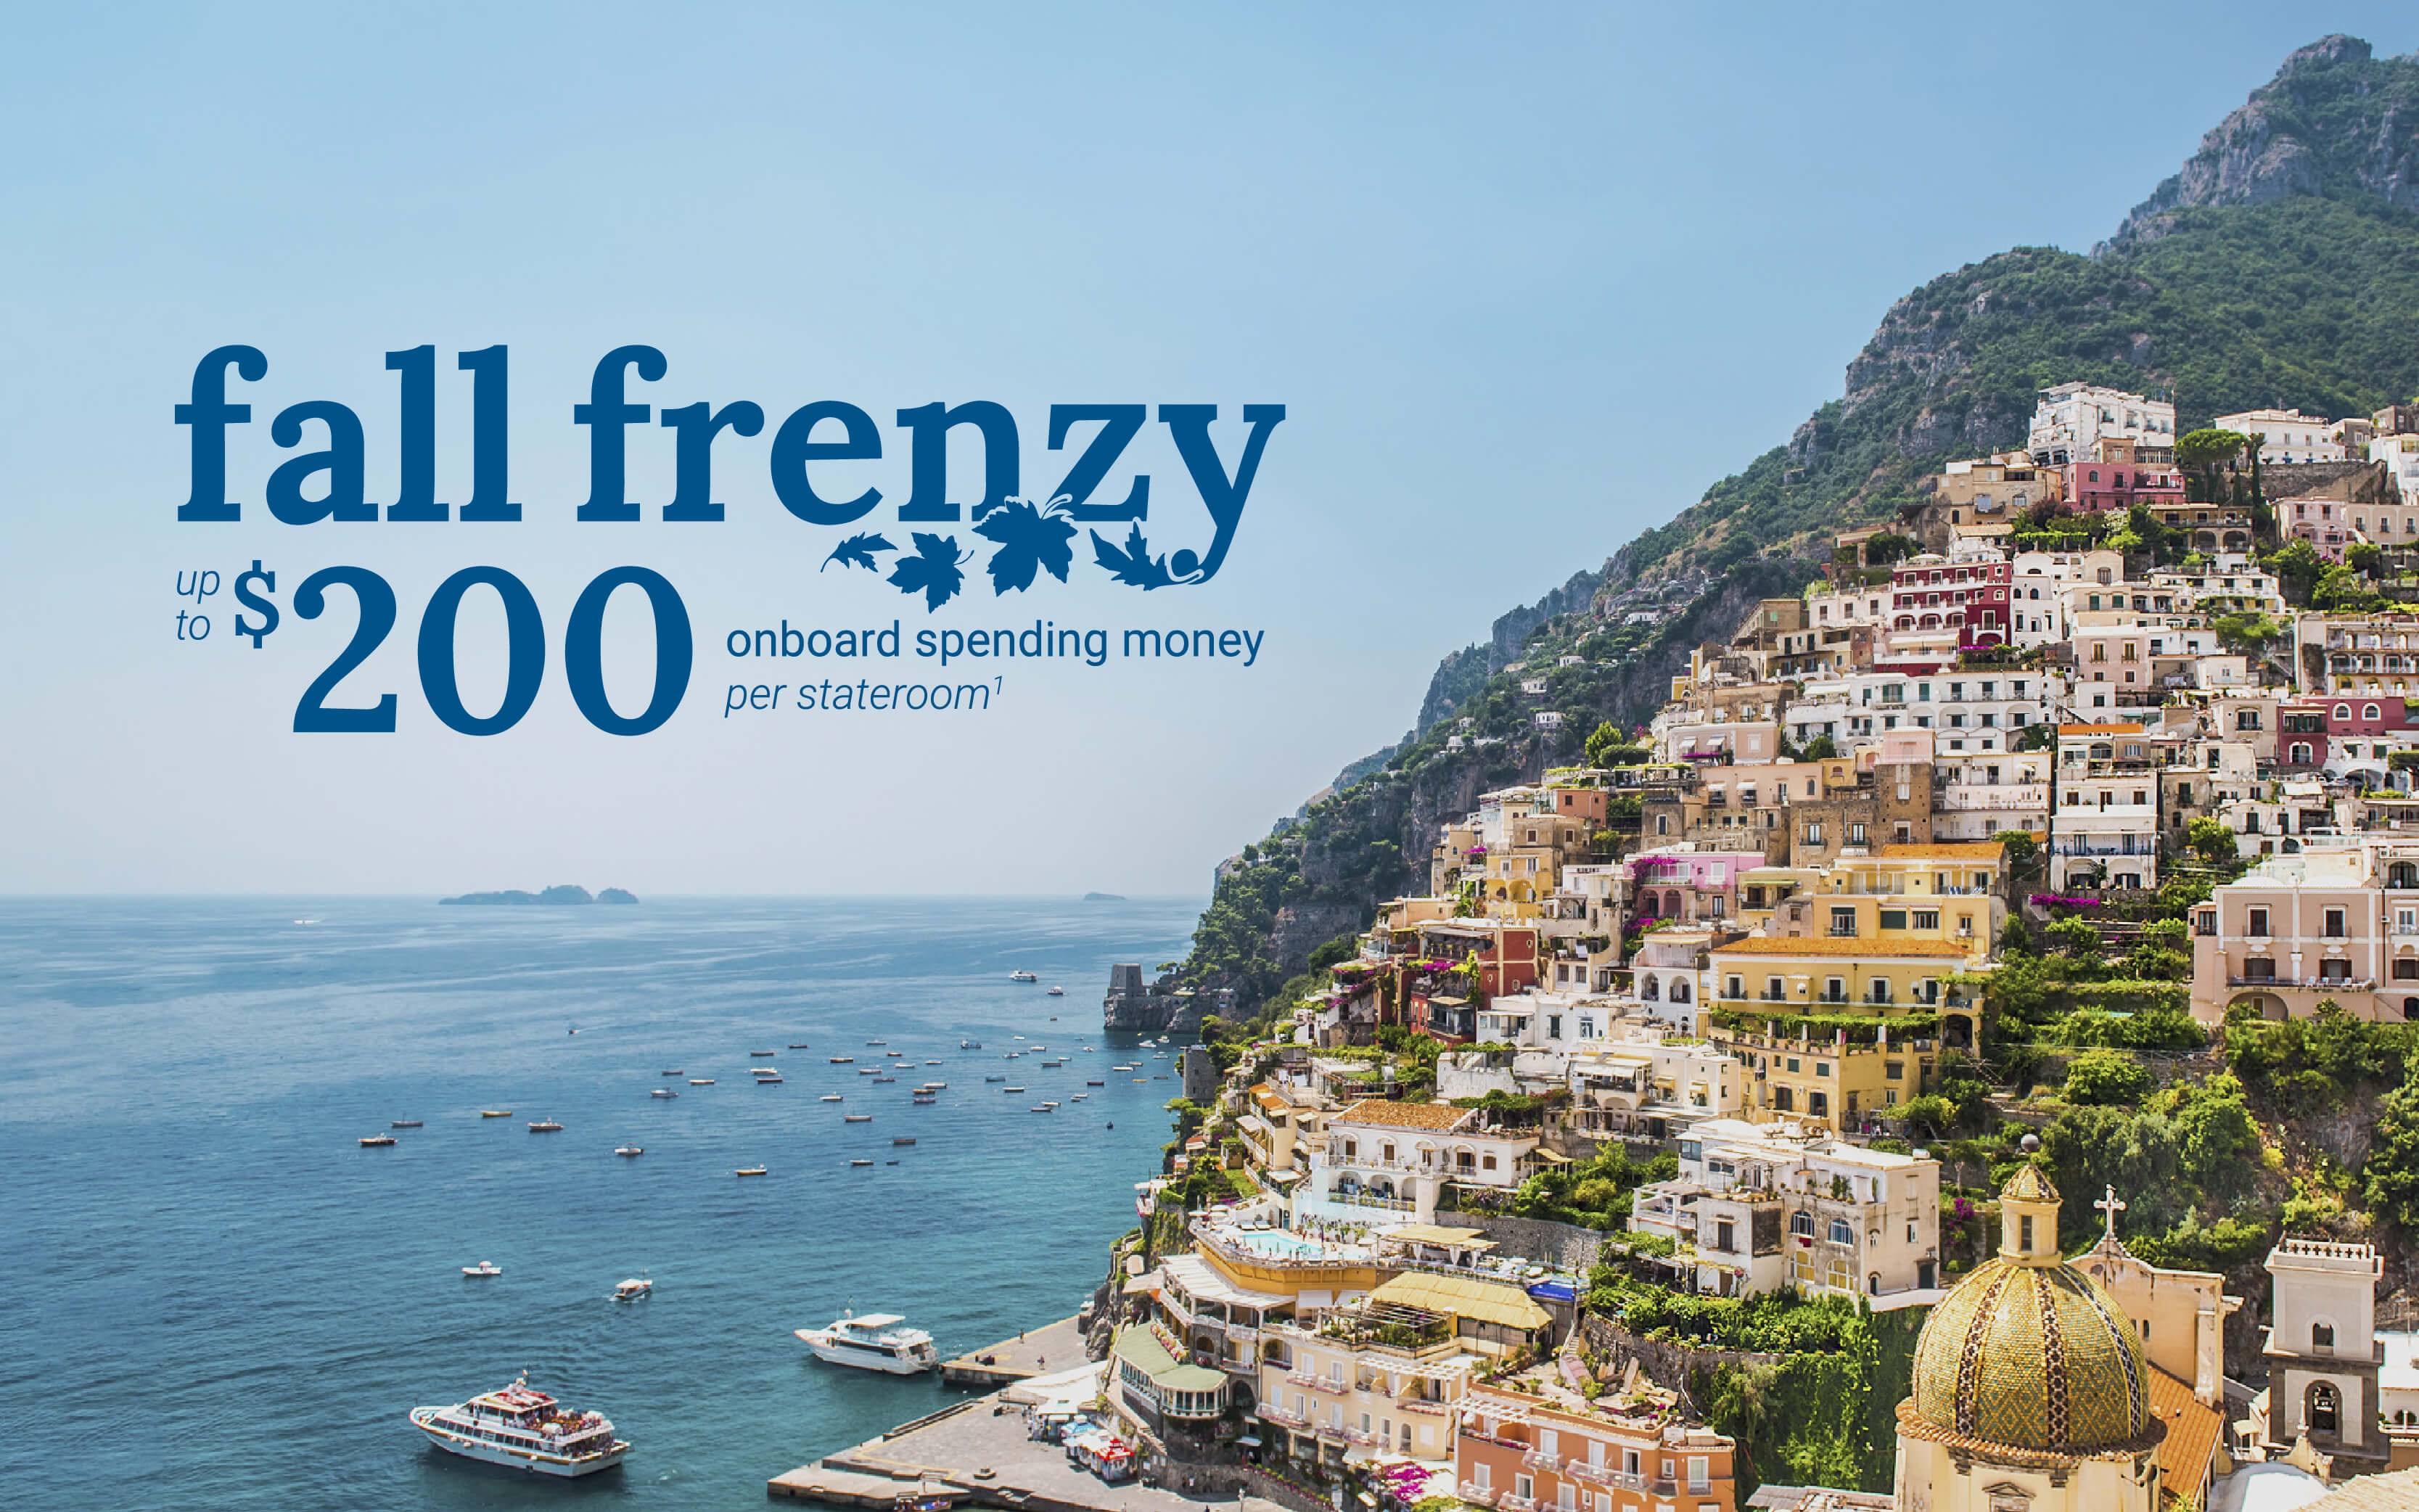 Enjoy up to $200 onboard spending money with Princess